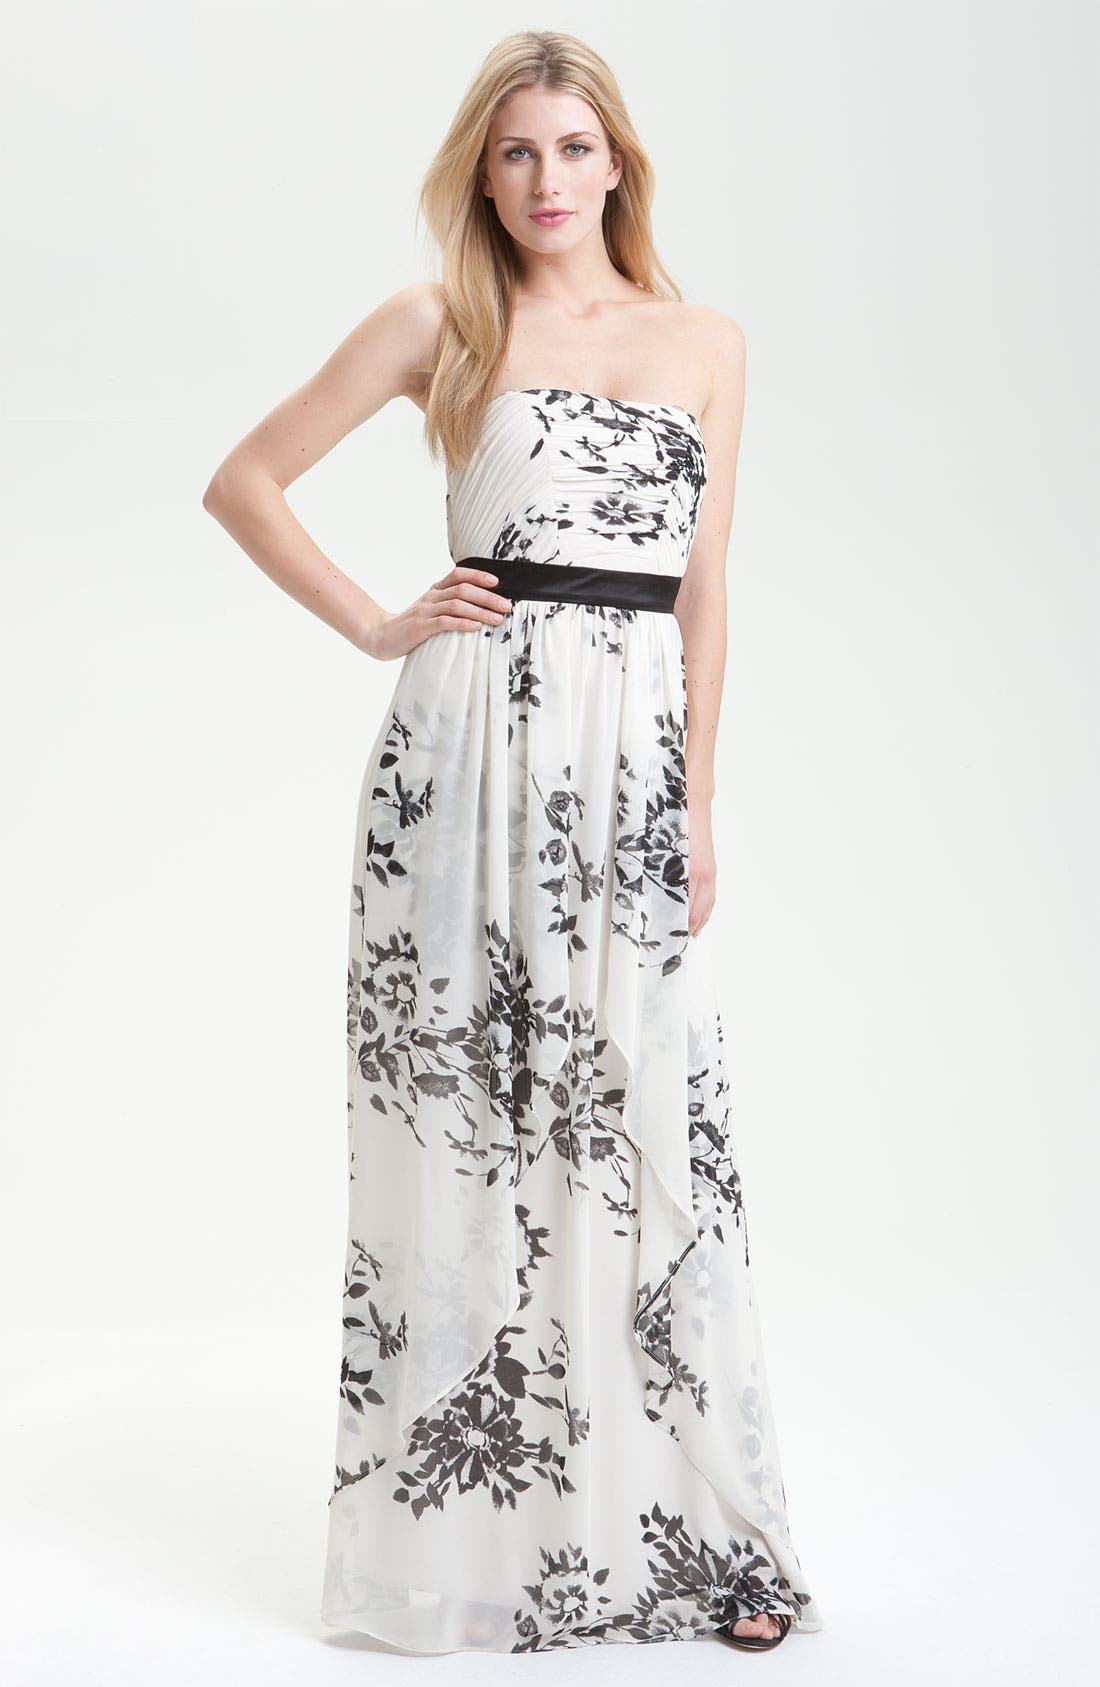 Main Image - Max & Cleo Floral Print Strapless Gown